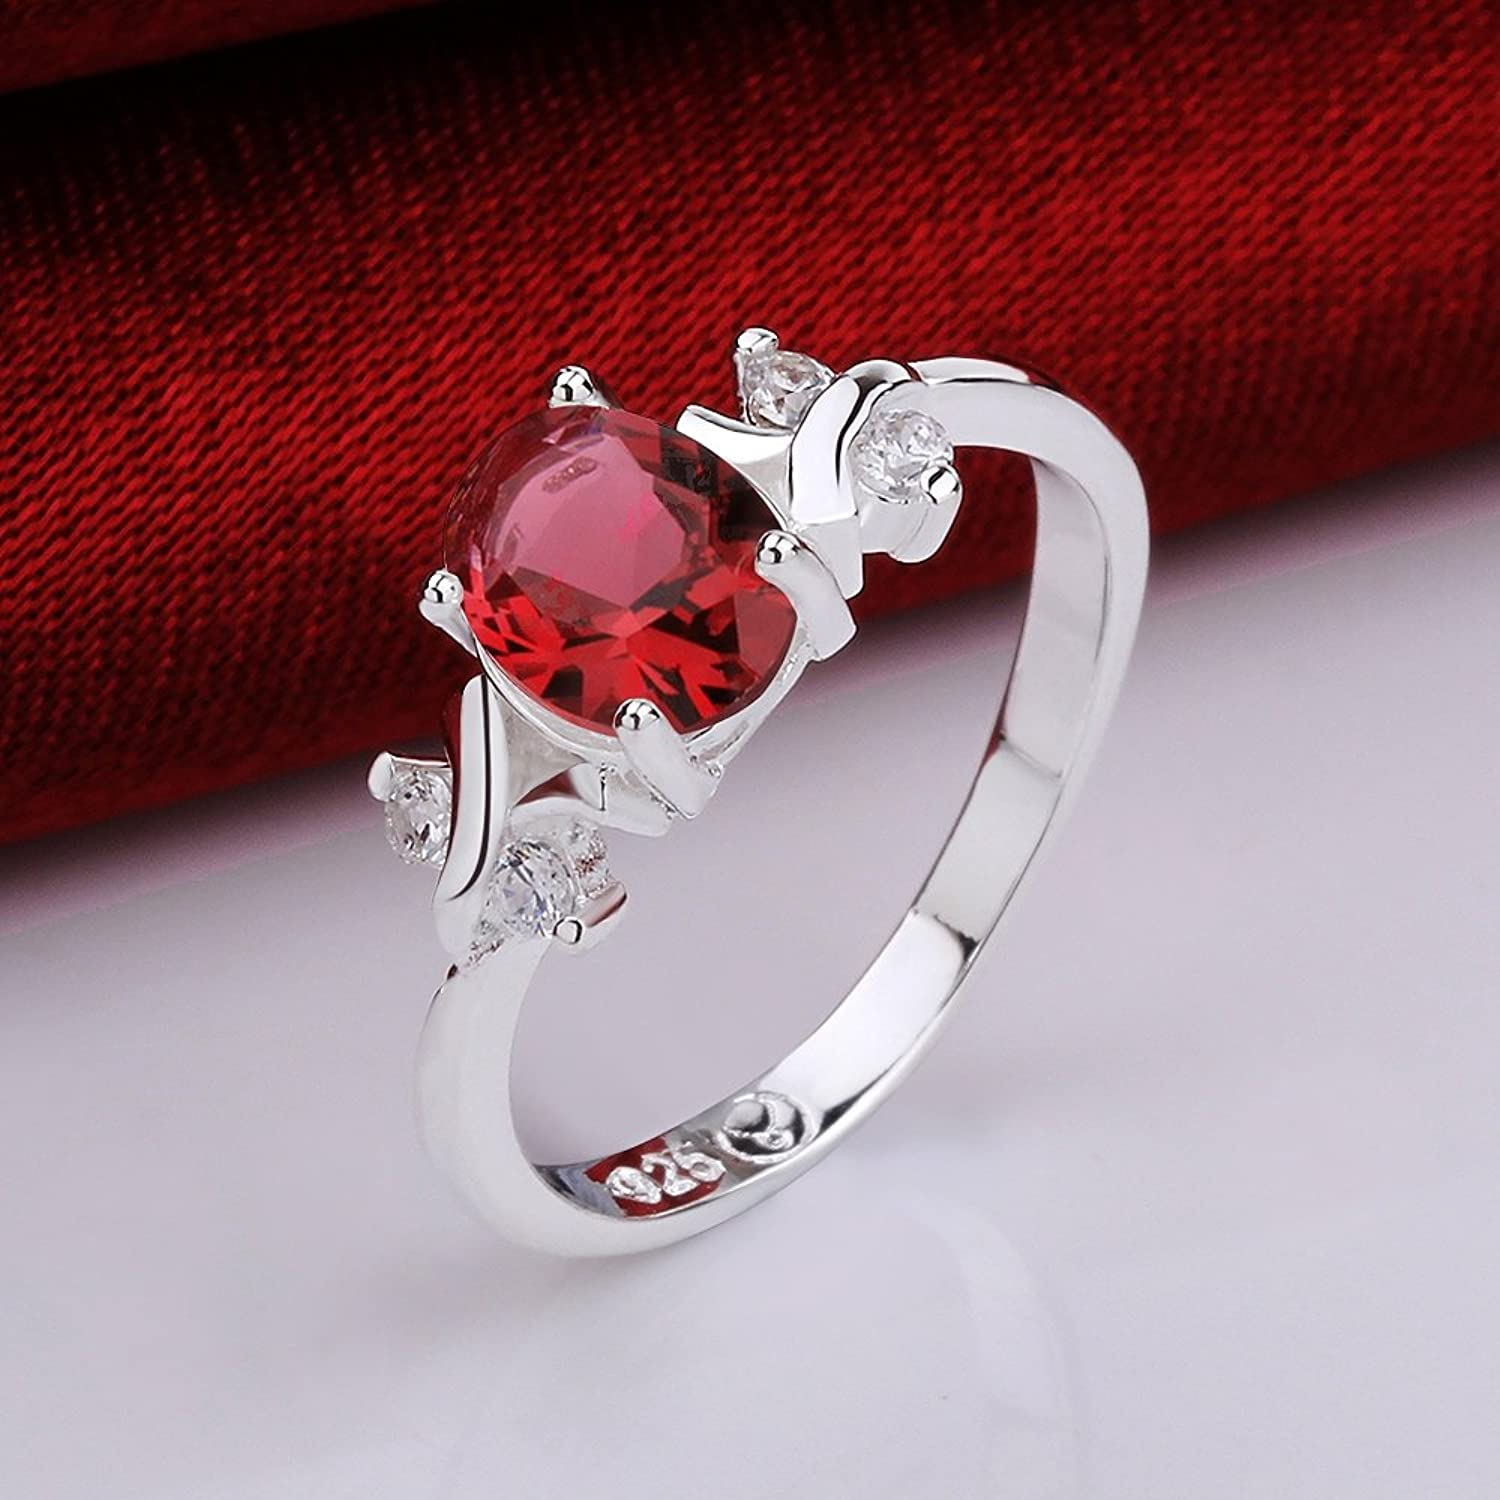 ring black vintage engraved onxy jewelry products flowers jewellery silver real for rings natural men garnet red fine stone sterling with